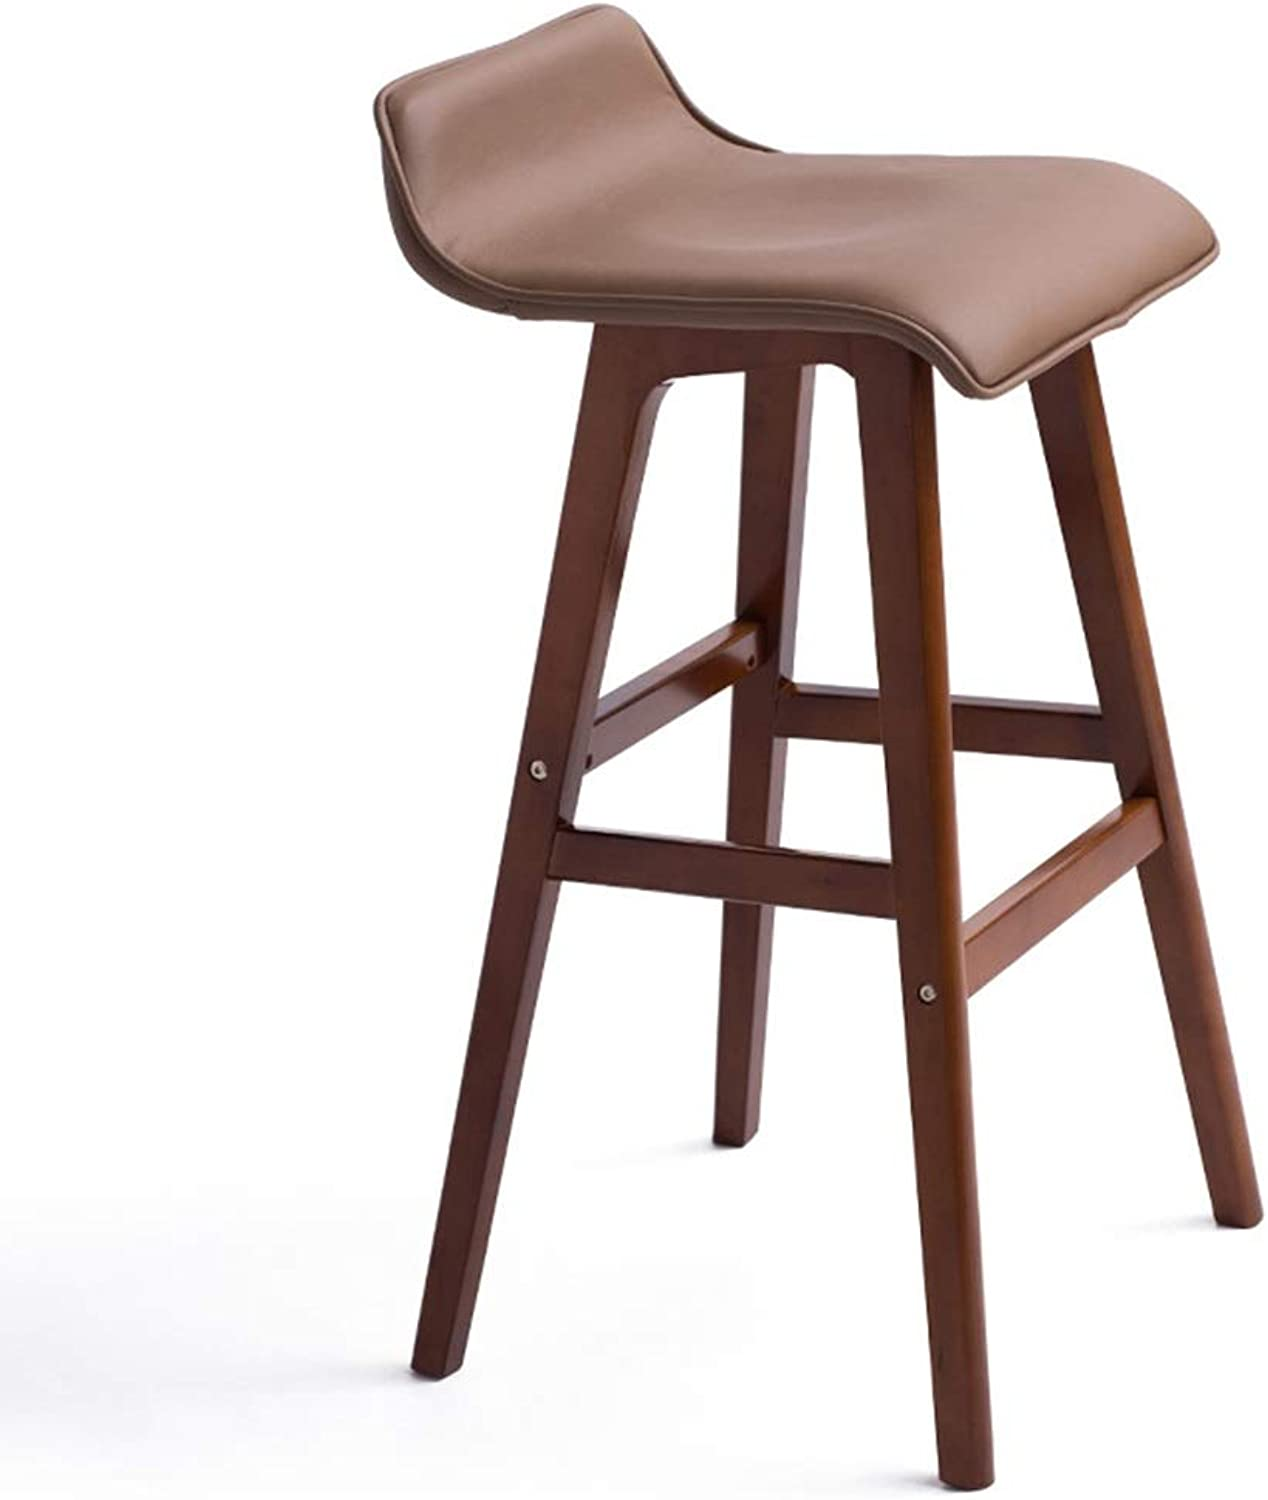 POOL Counter Height Bar Stool, Bent Wood Upholstered Modern Dining Bar Stool Chair with Low Back for Dining Room, Kitchen, Bar Counter ,65CM (color   Leather)